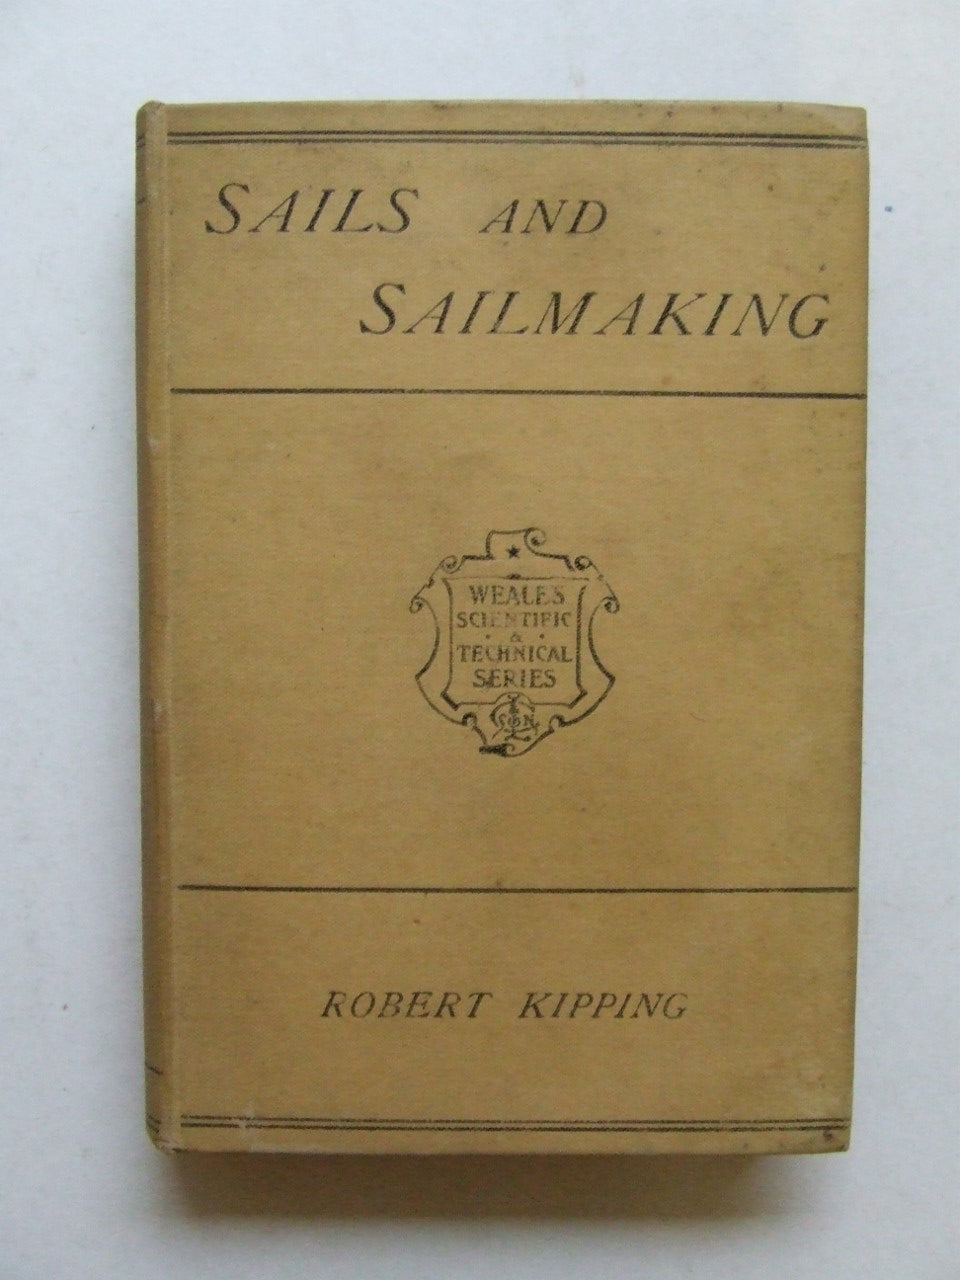 Sails and Sailmaking with draughting